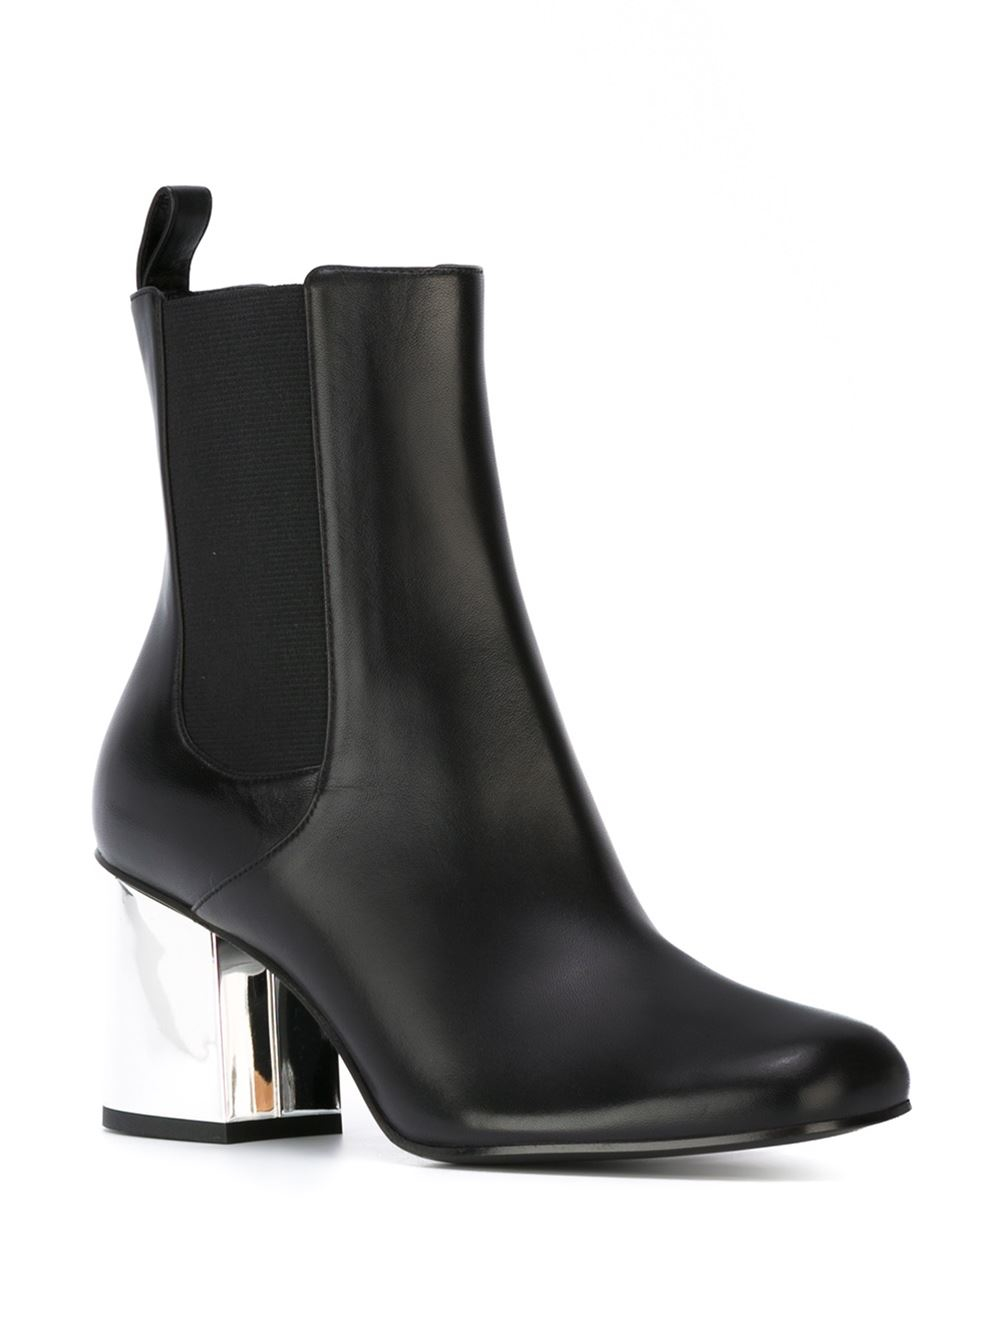 gucci ankle boots with metal heel in black lyst